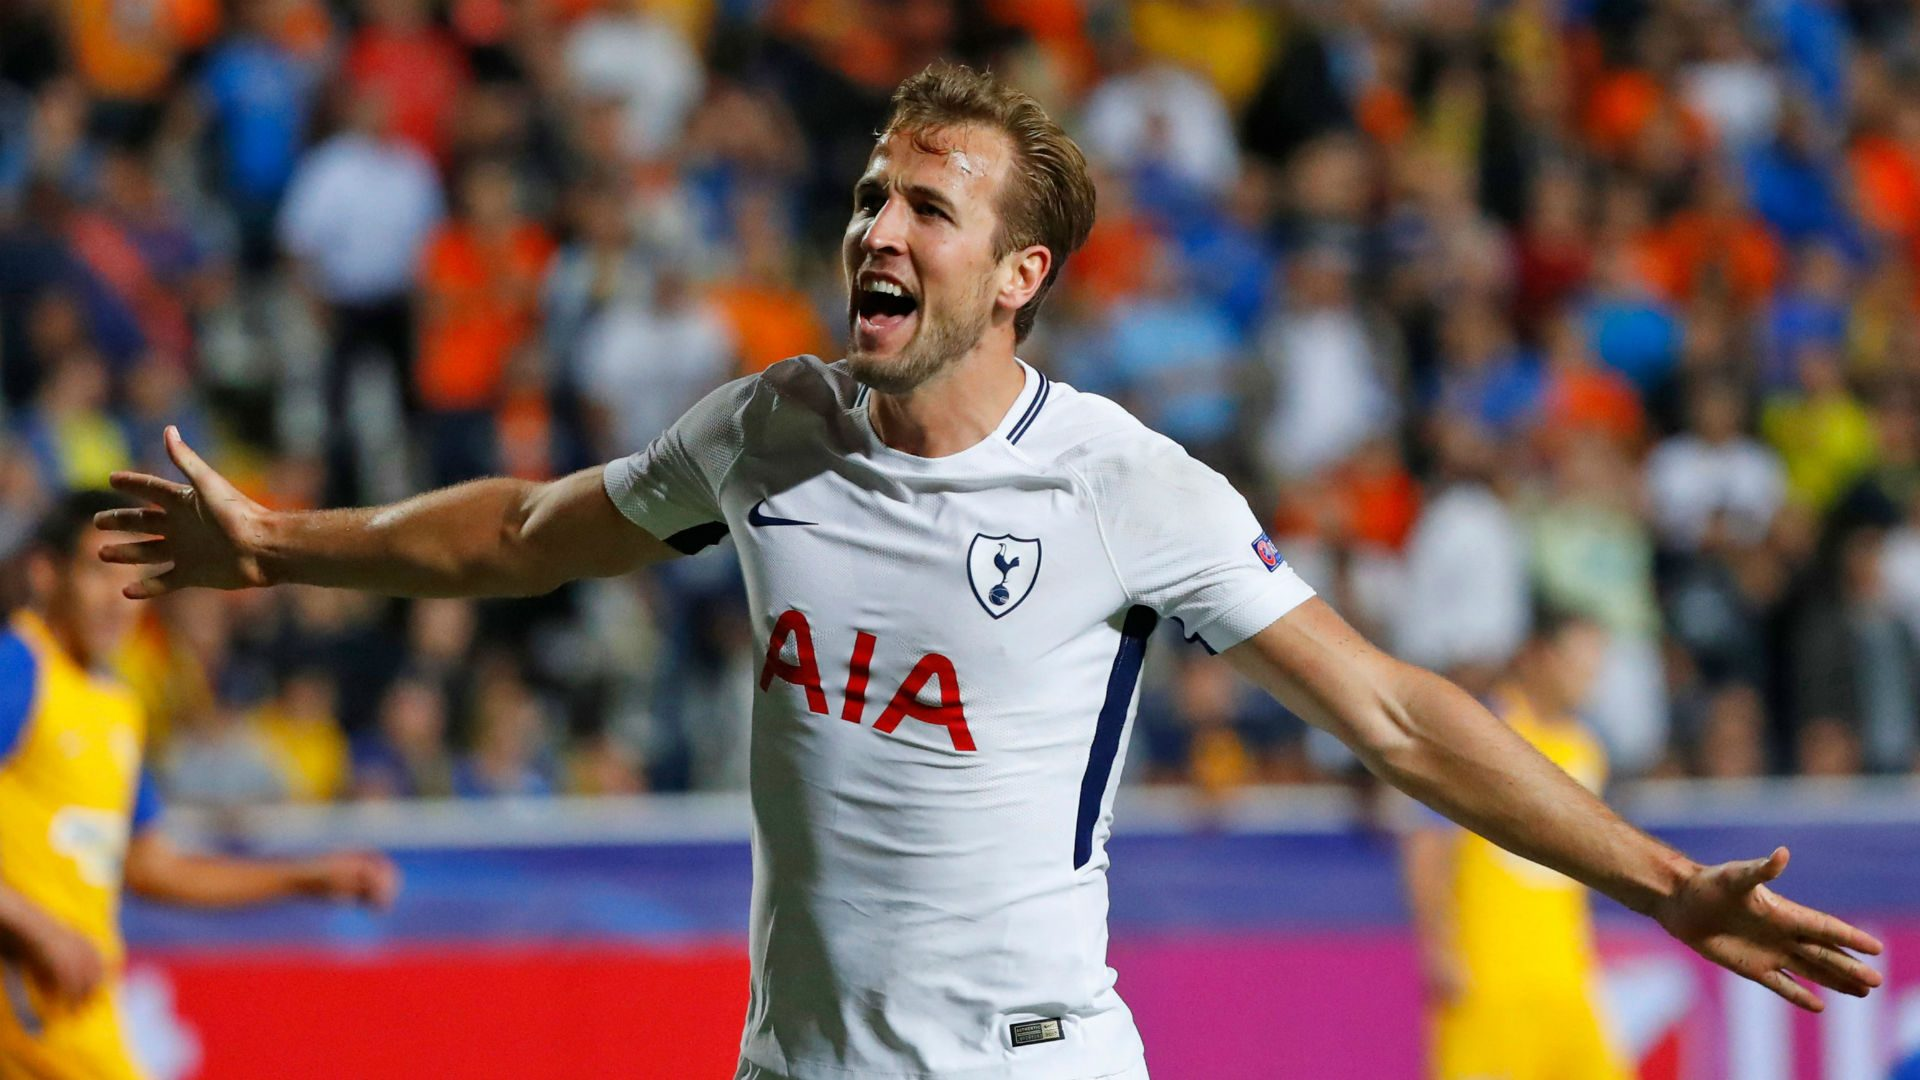 Harry Kane Wallpaper Images